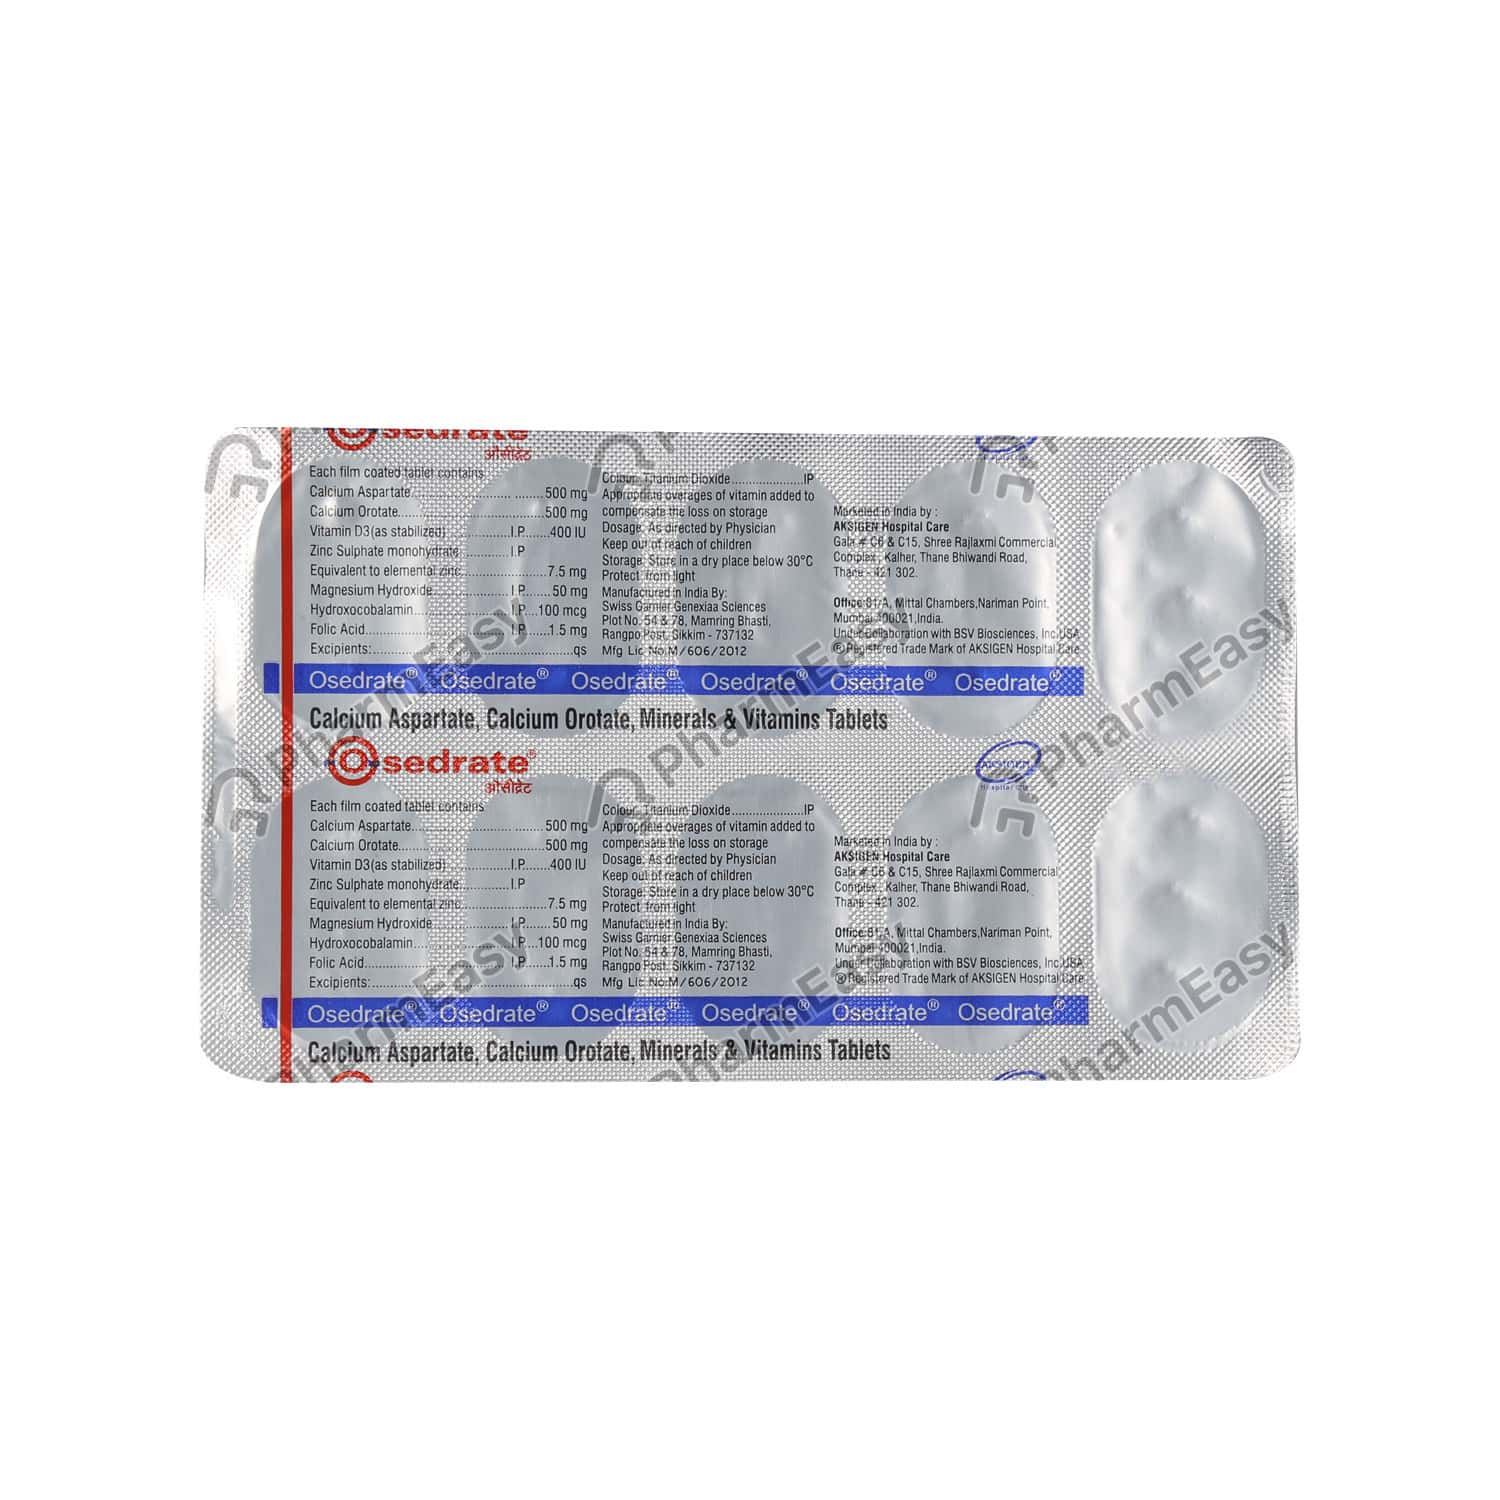 Osedrate Strip Of 10 Tablets